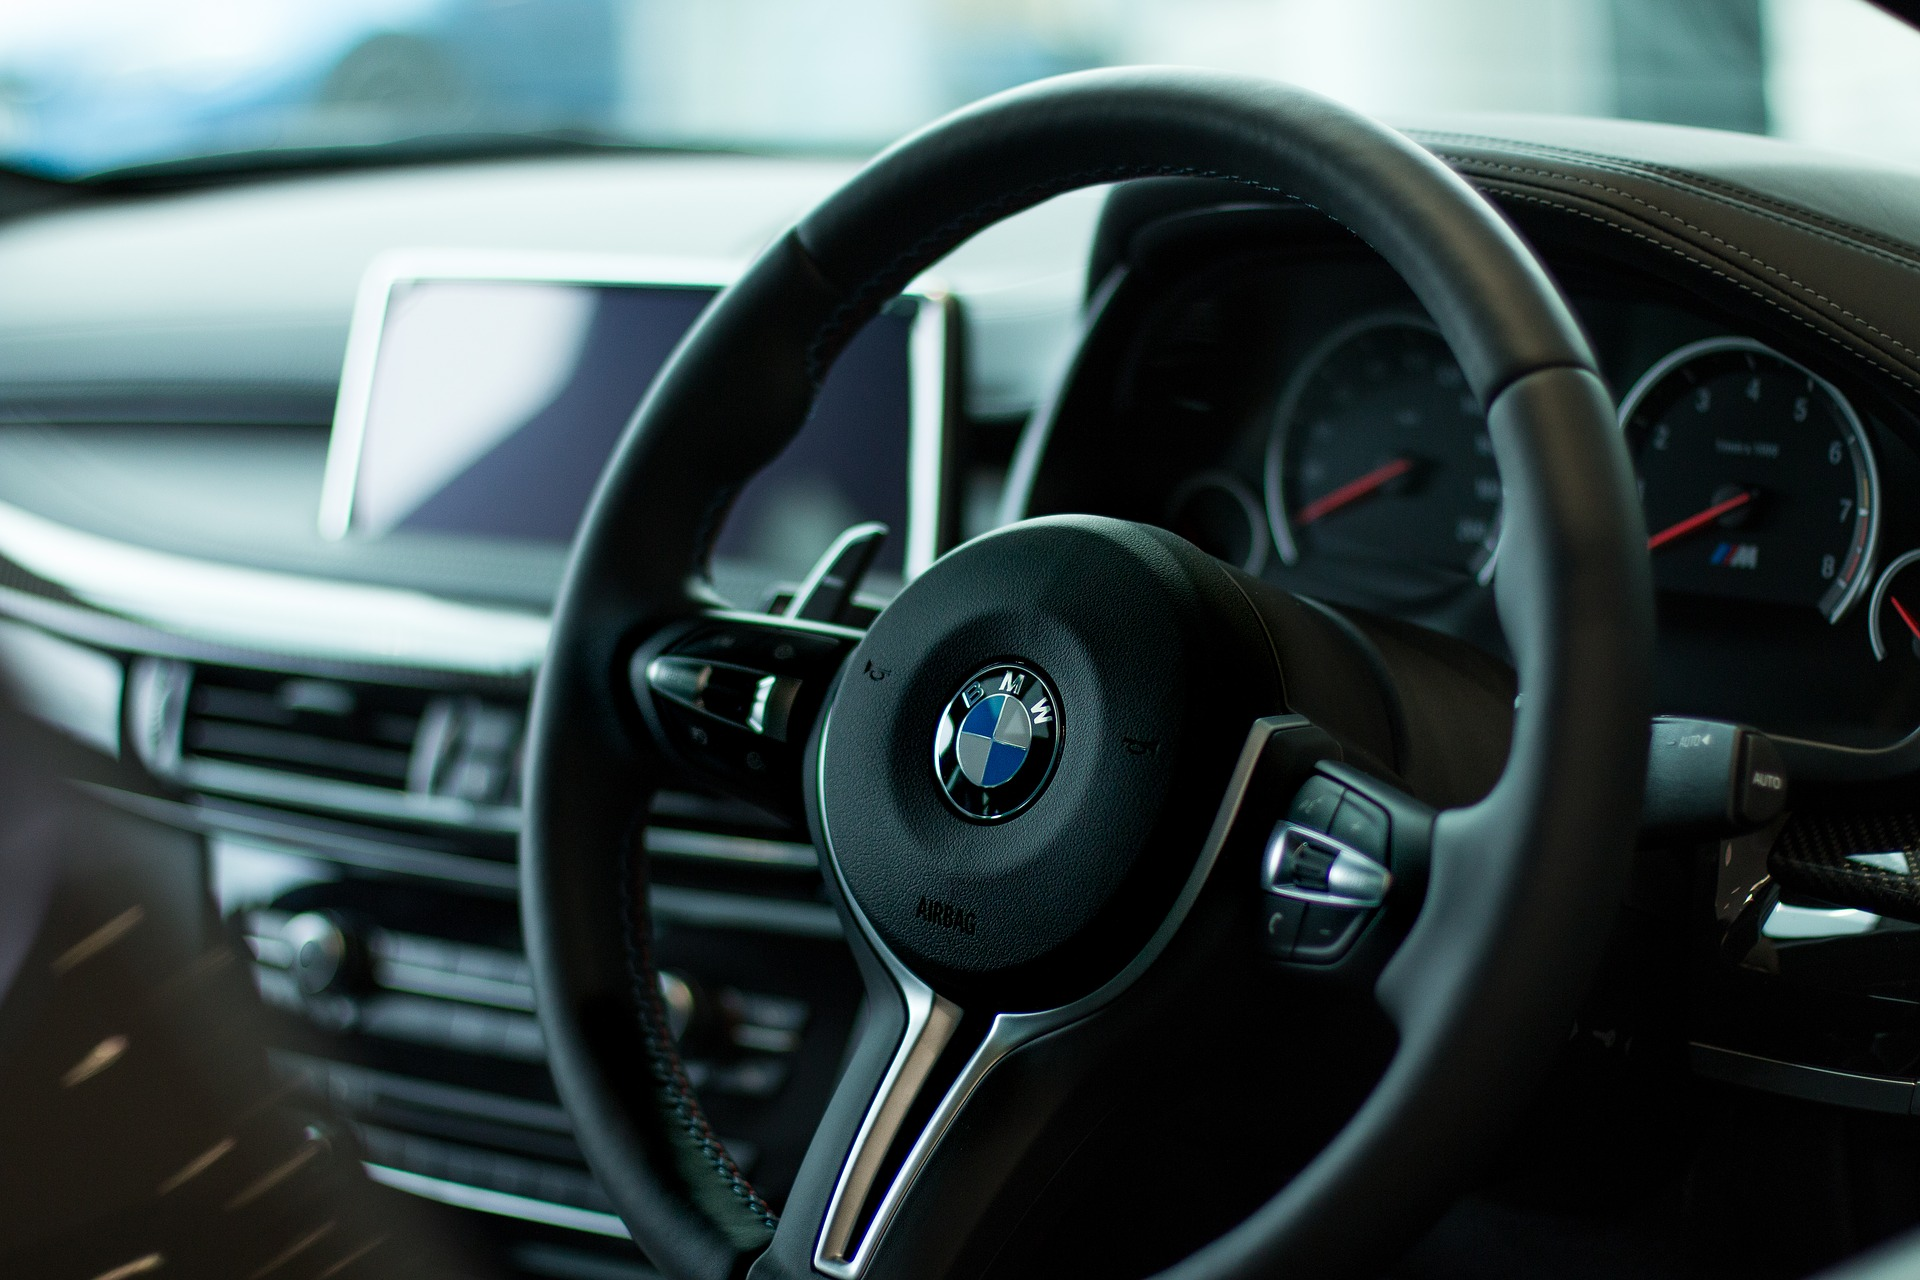 Steering wheel inside a car. Photo: Pixabay